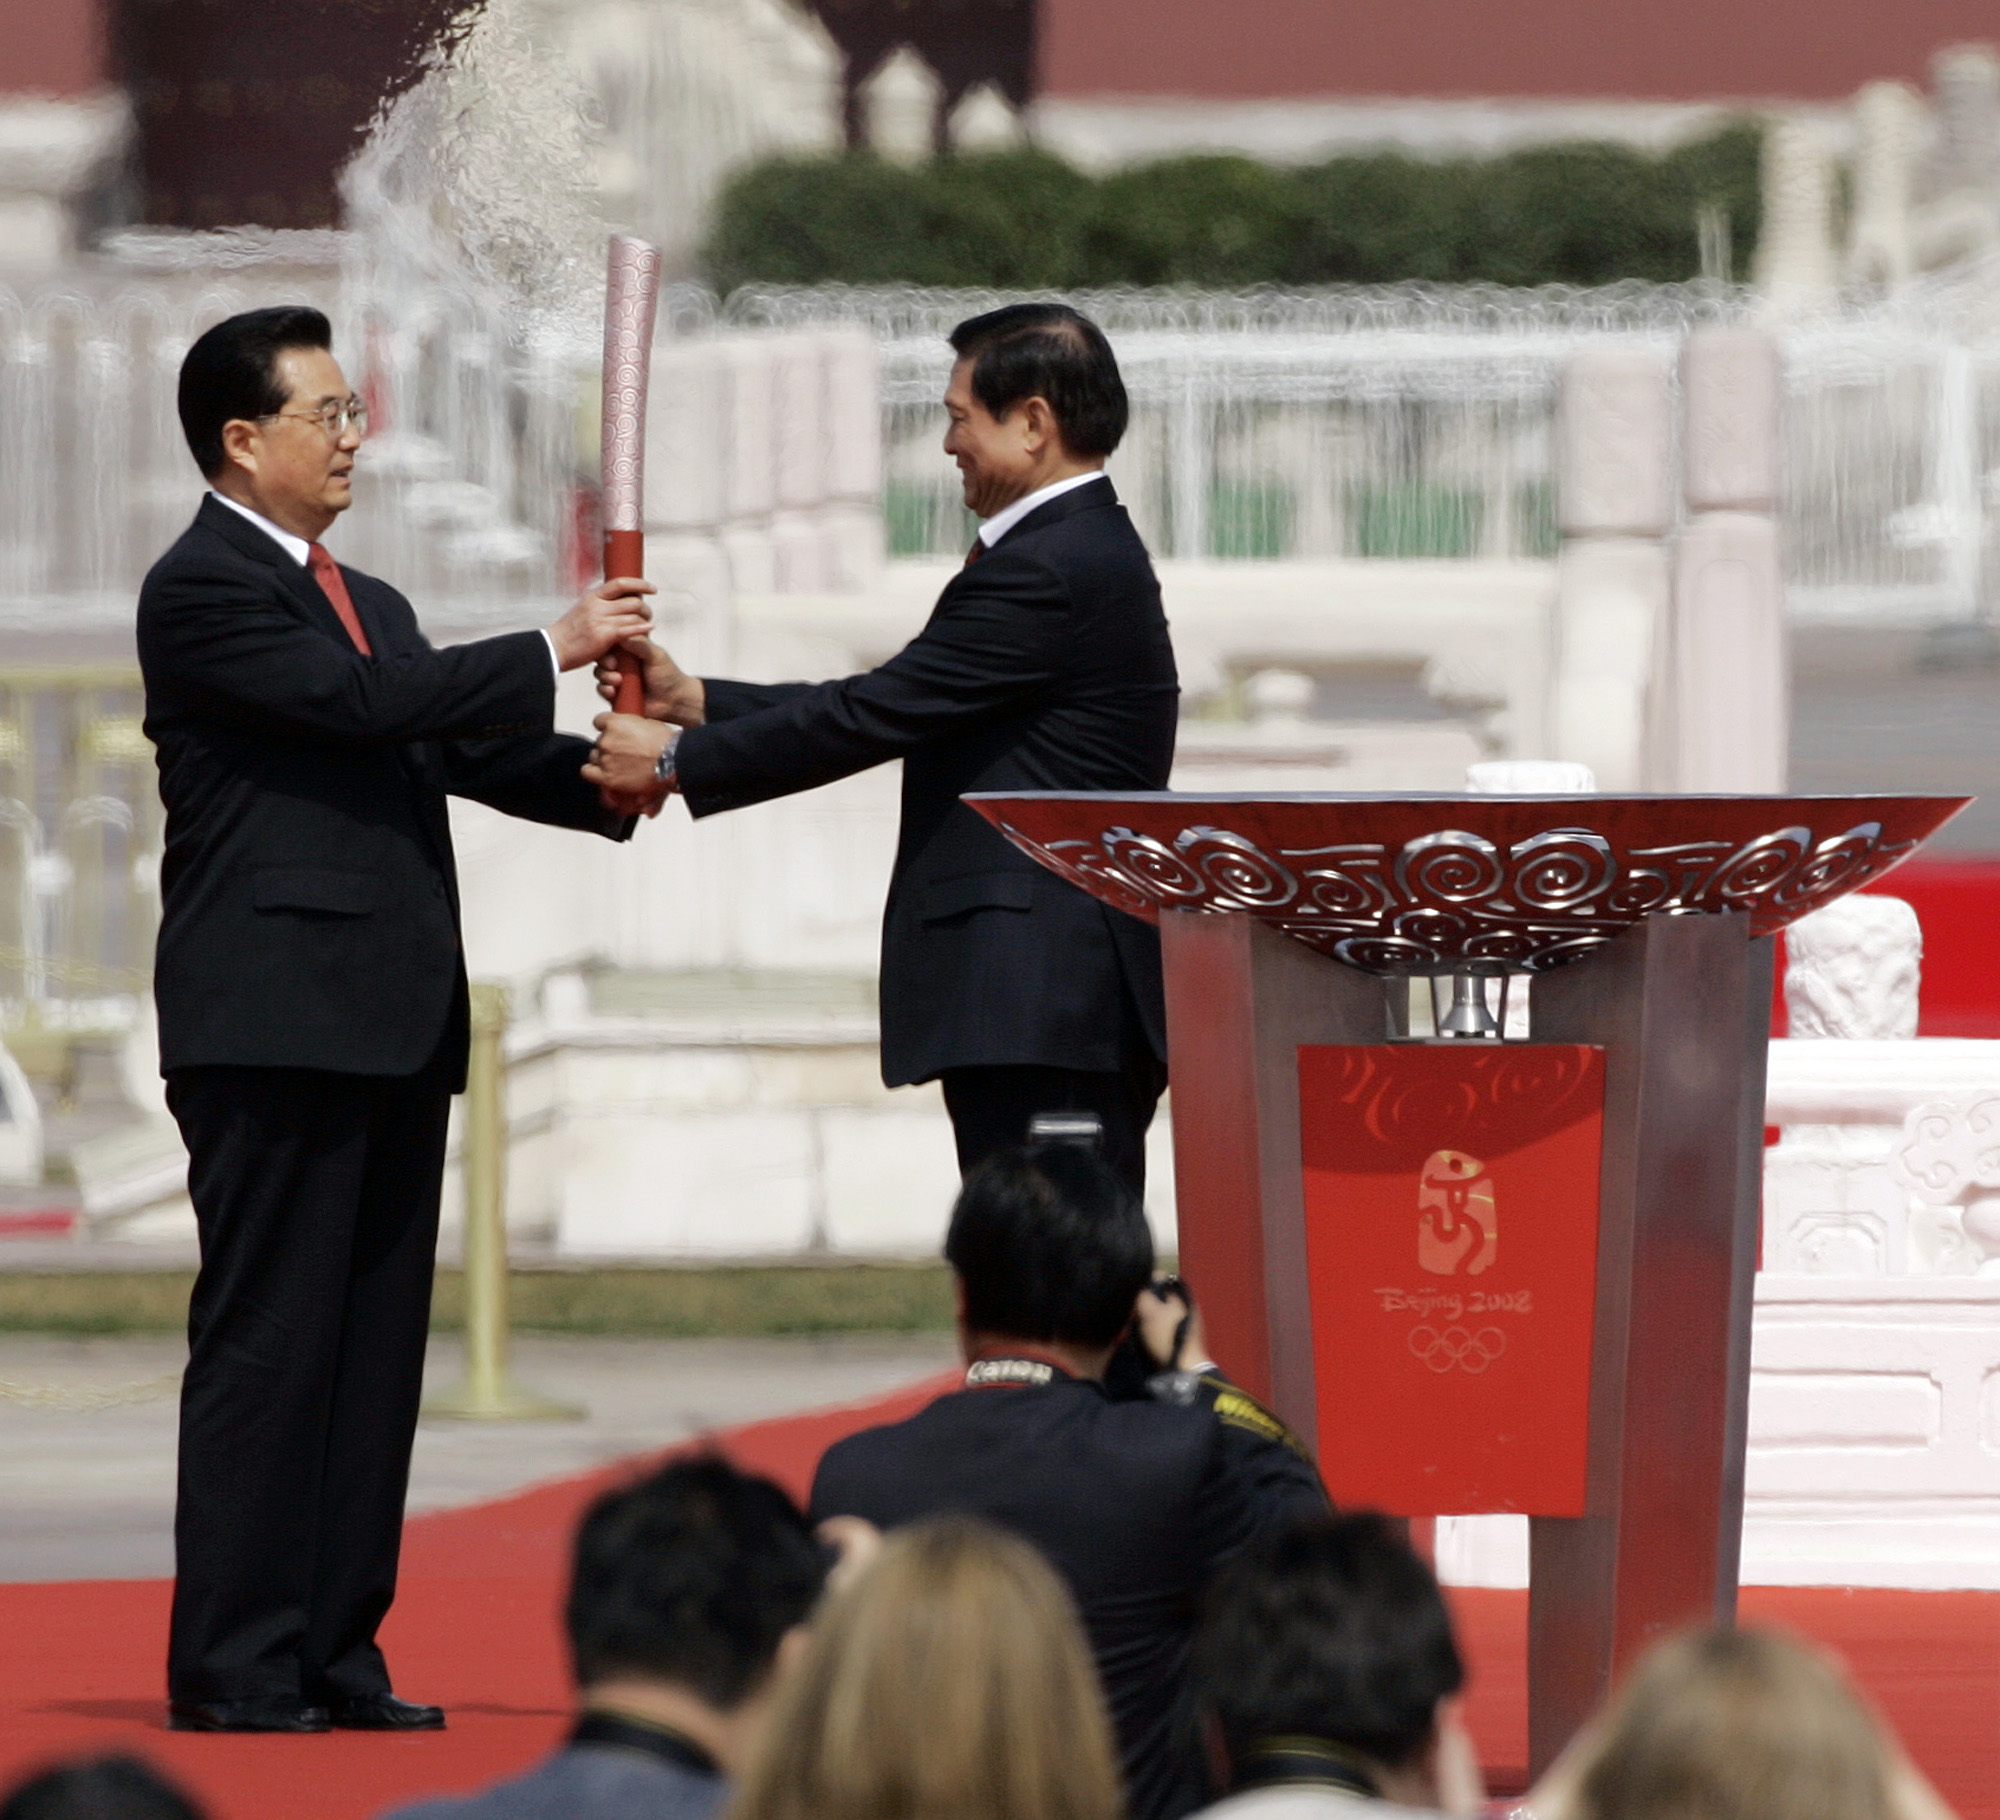 Chinese President Hu Jintao, left, receives the Olympic torch from Liu Qi, the president of the Beijing Olympics organizing committee, during the Beij...